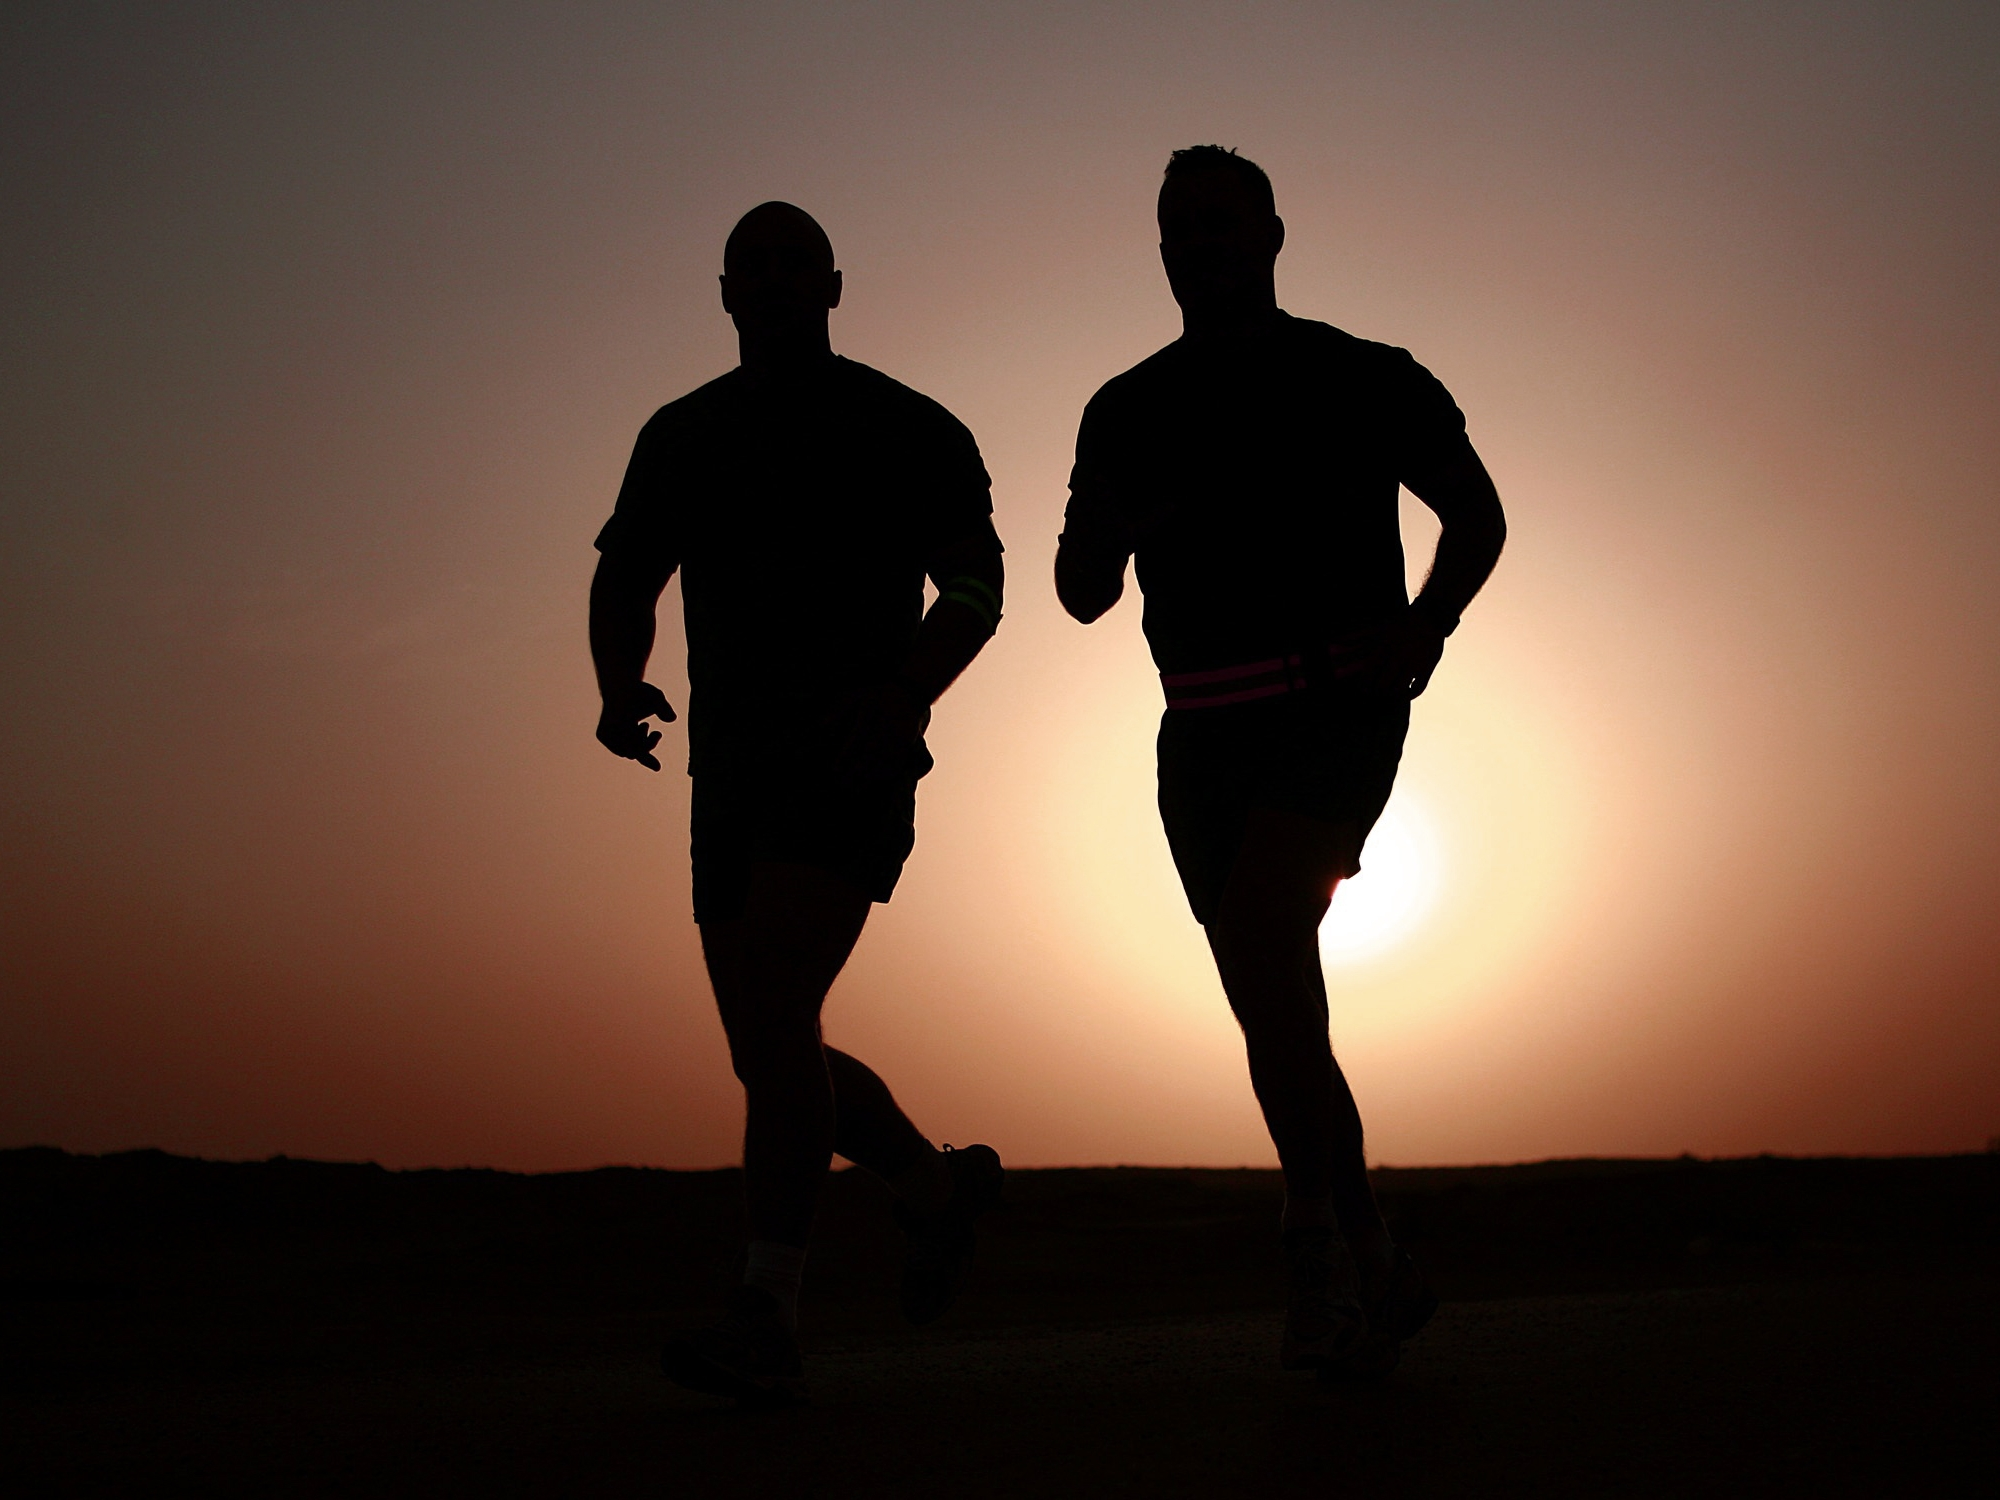 runners-silhouettes-athletes-fitness-39308a.jpg